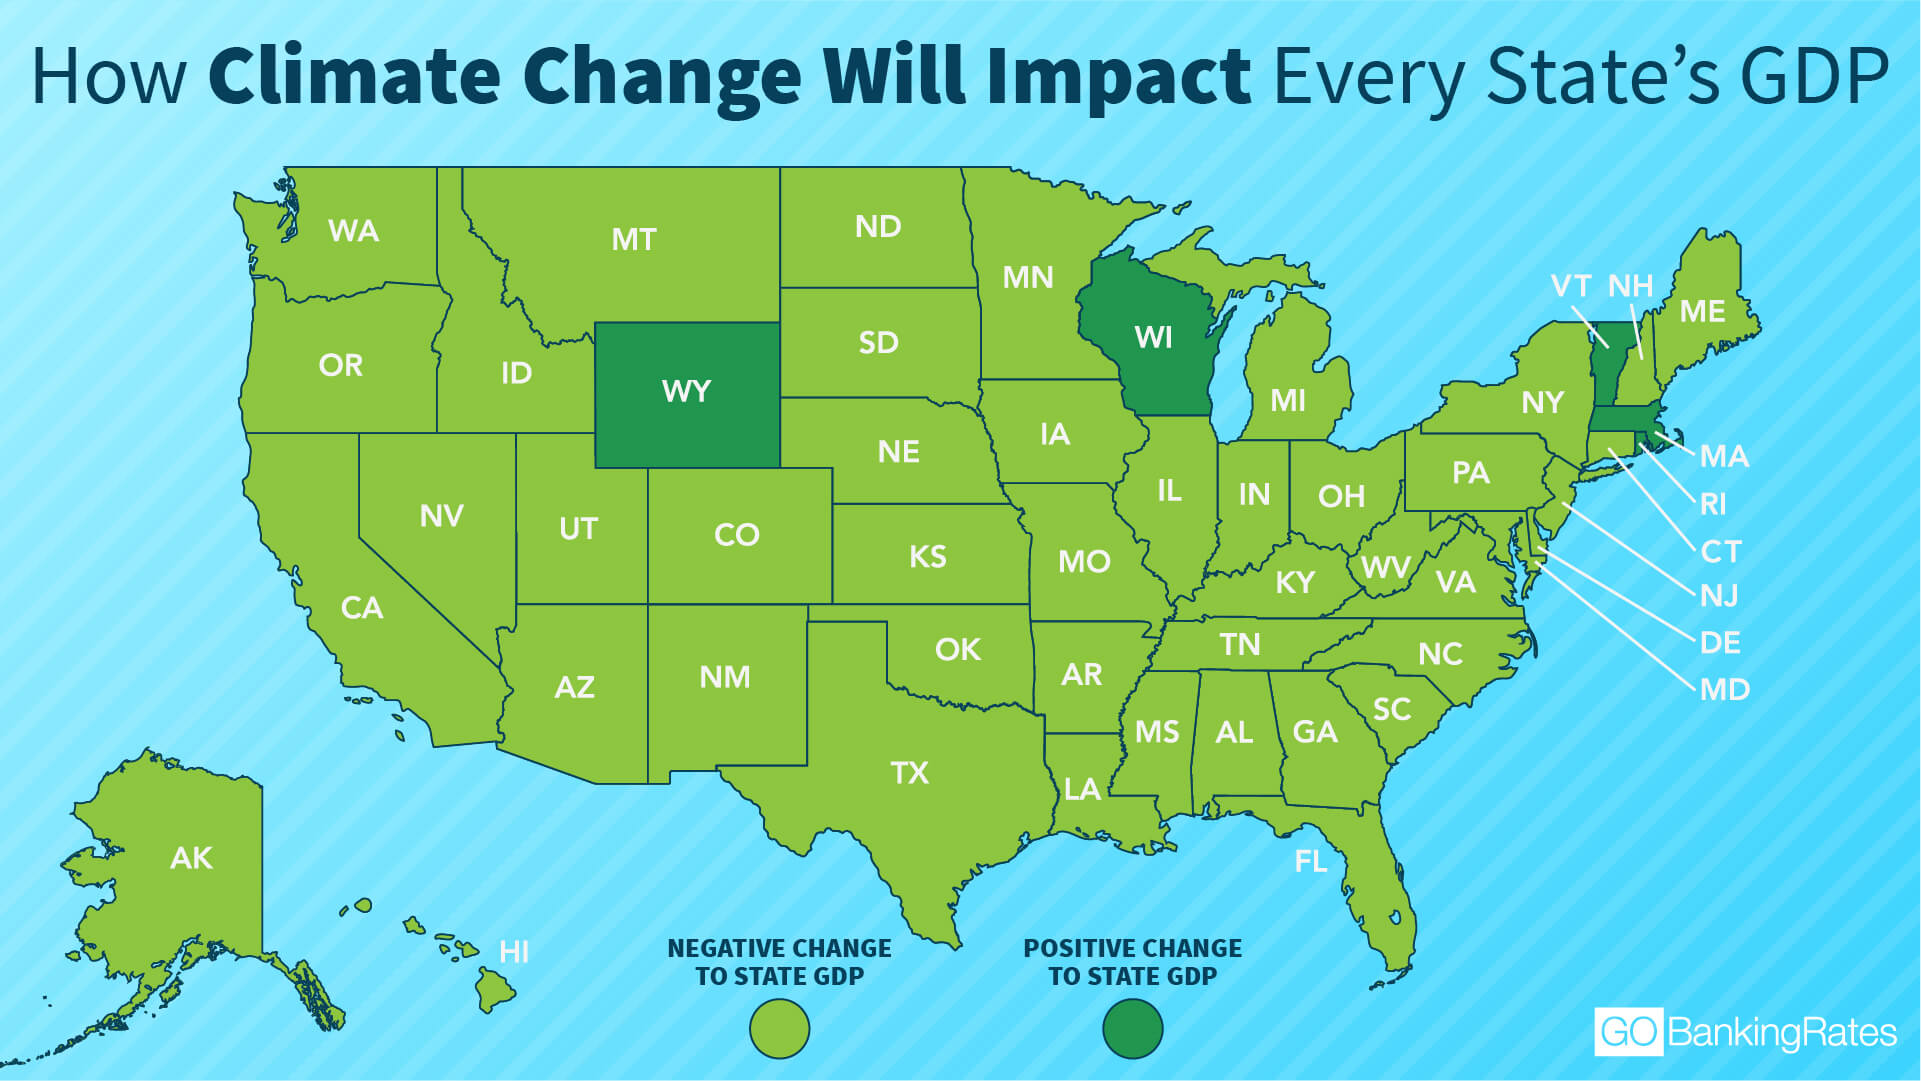 How Climate Change Will Impact Every State's GDP